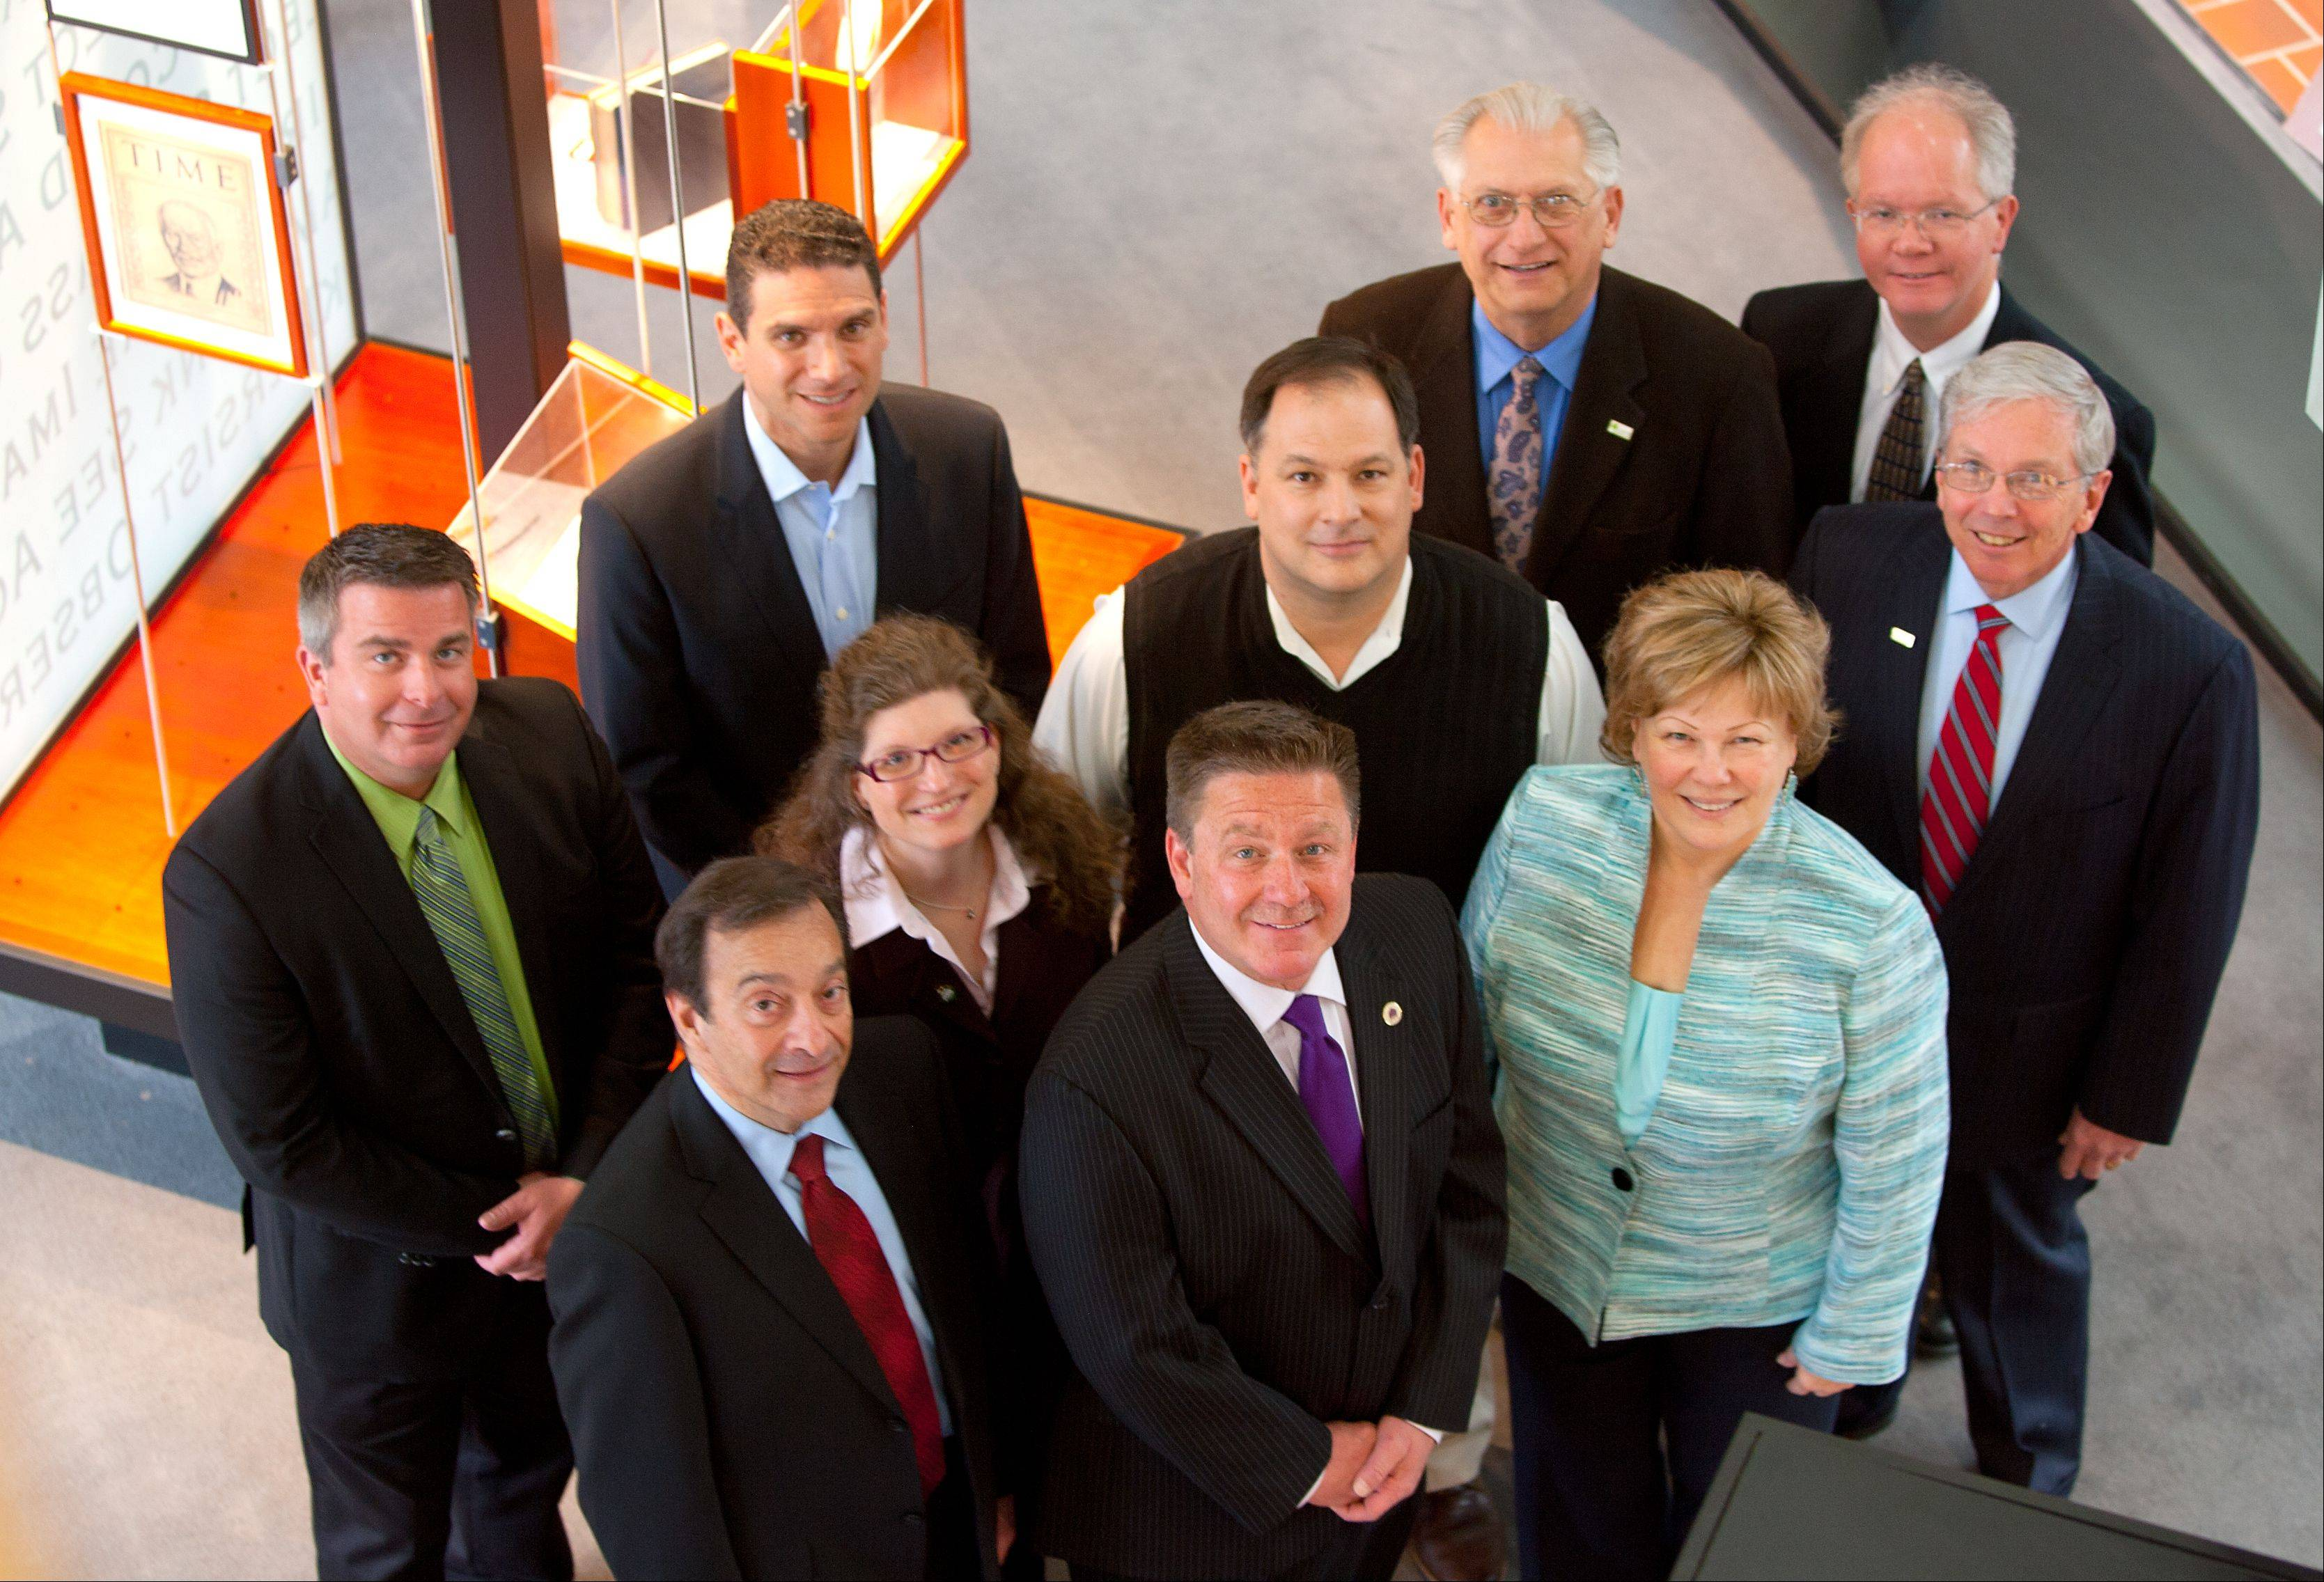 Newly elected mayors and village presidents from DuPage County gathered Wednesday at the DuPage County administration building in Wheaton. First row from left: Rich Veenstra of Addison, Keith Giagnorio of Lombard and Gayle Smolinski of Roselle. Second row: Deborah Bullwinkel of Villa Park, Alex Demos of Glen Ellyn and David Brummel of Warrenville. Third row: Frank Soto of Bensenville, Franco Coladipietro of Bloomingdale, Joe Broda of Lisle and Erik Spande of Winfield.